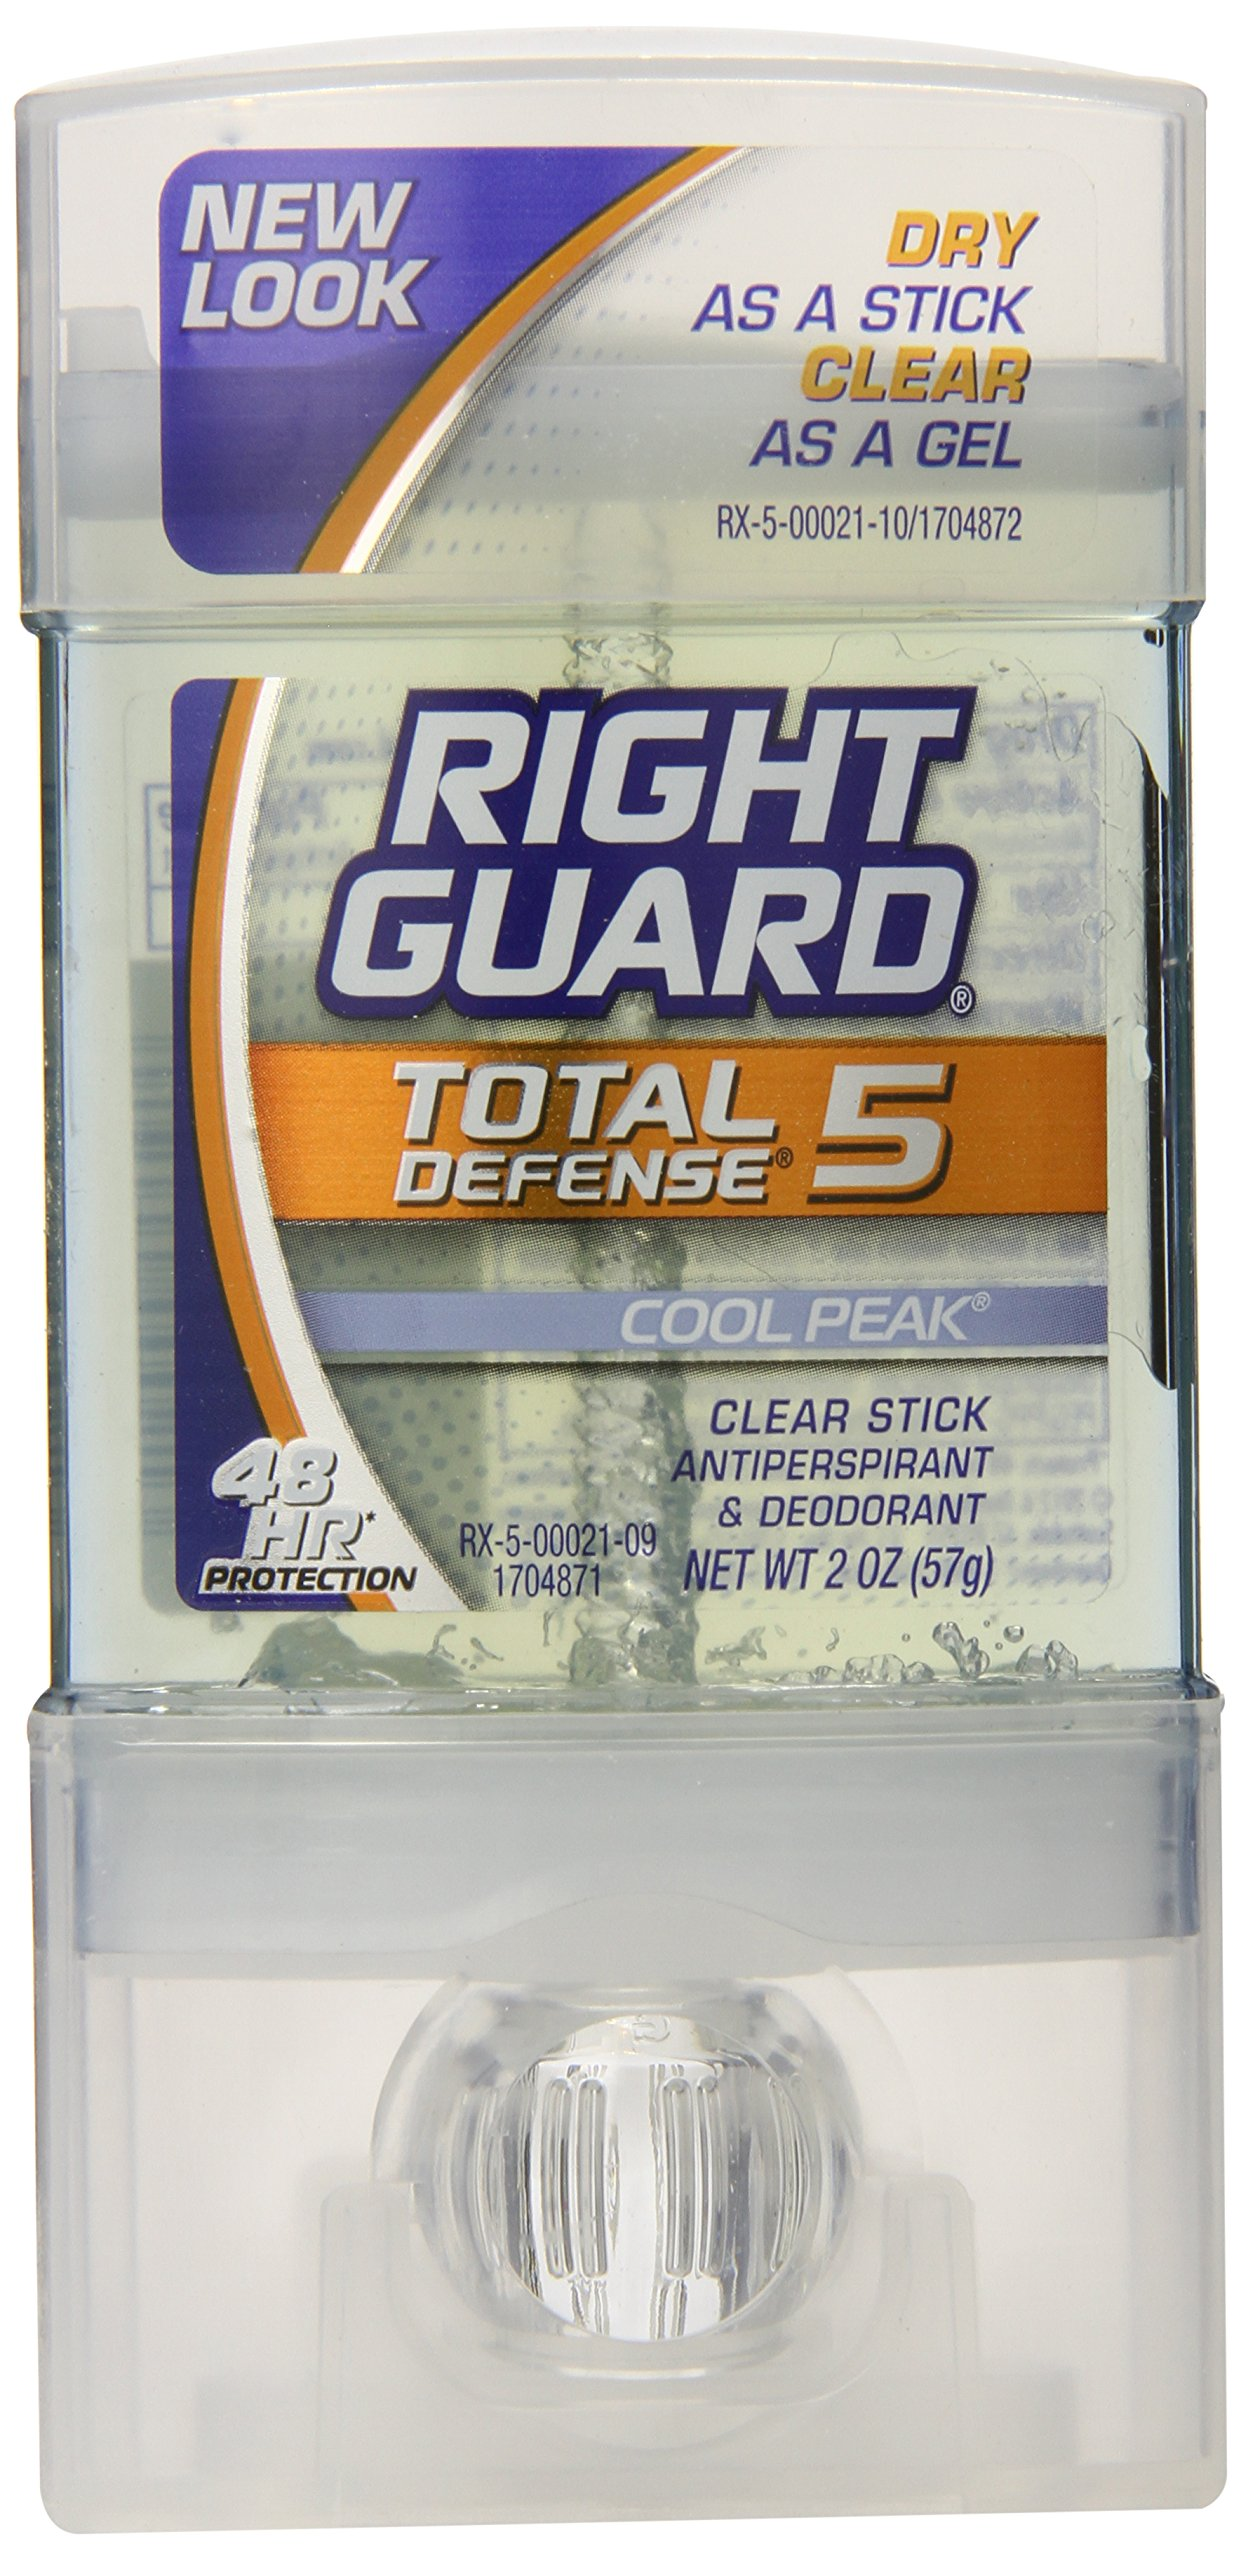 Right Guard Total Defense Clear Stick, Cool Peak, 2-Ounce Units (Pack of 6)